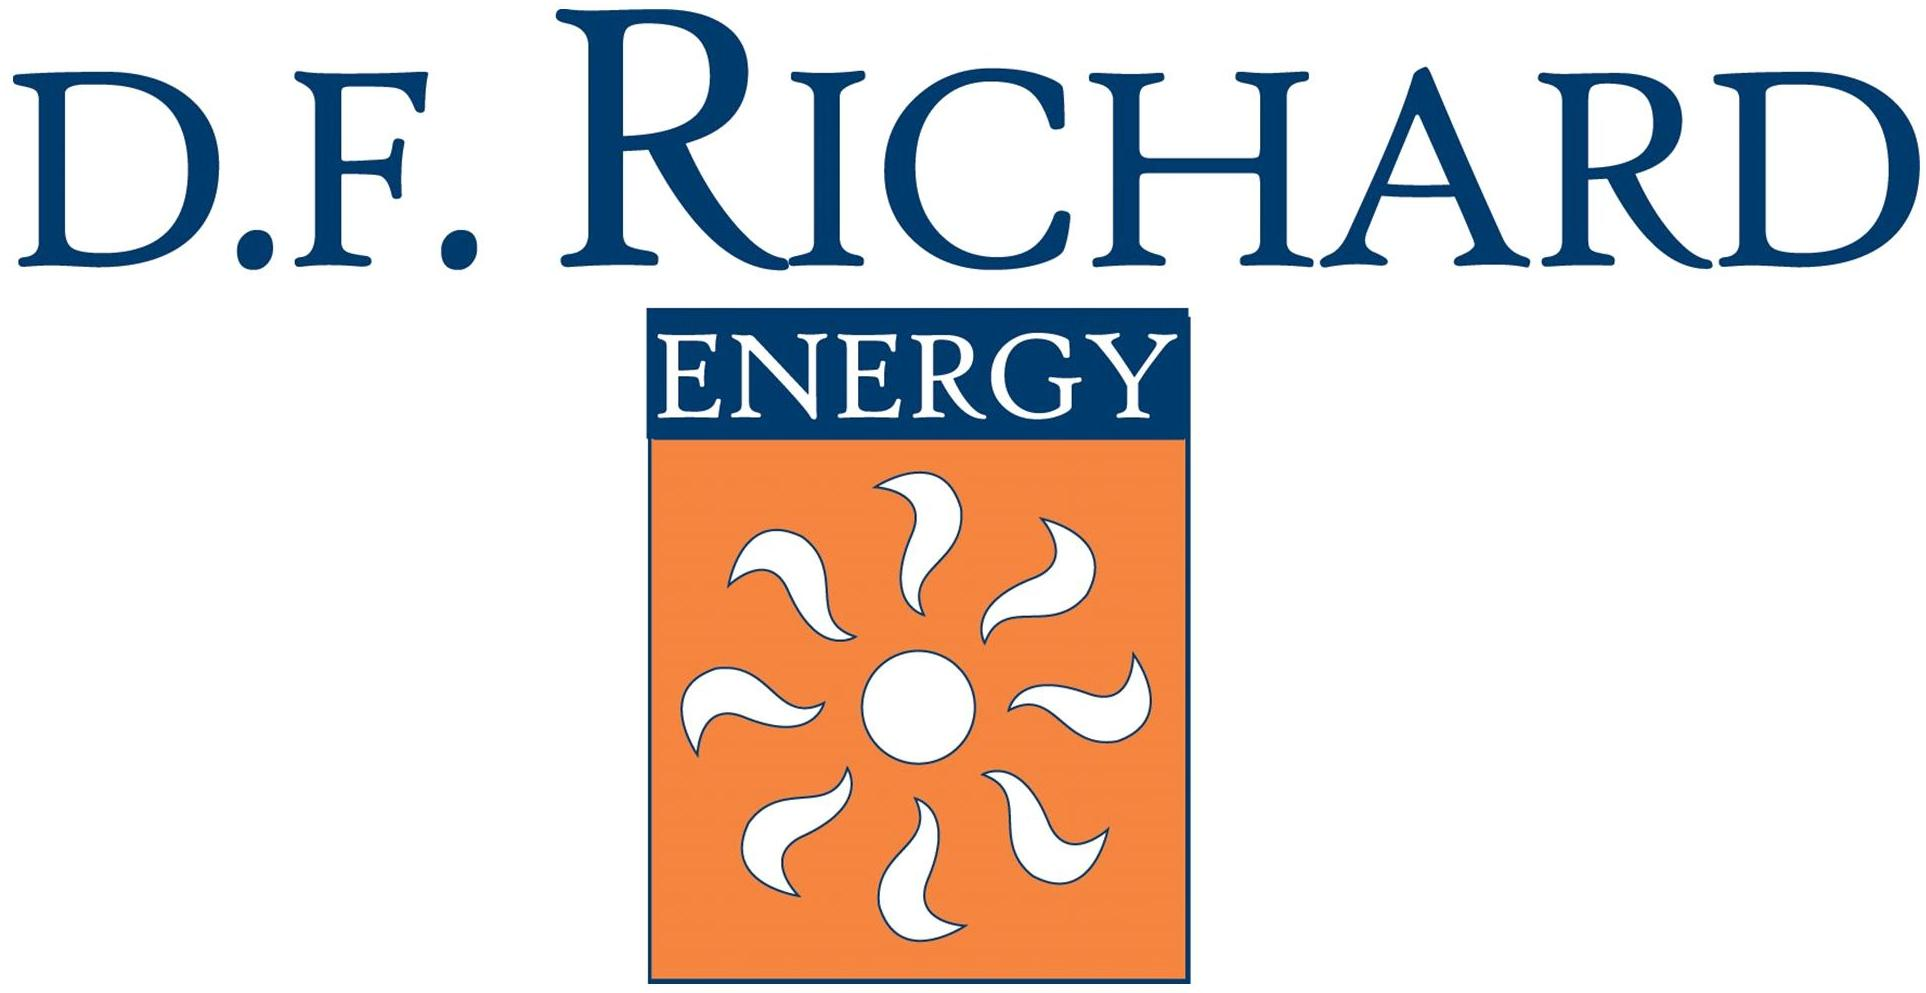 D. F. Richard Energy